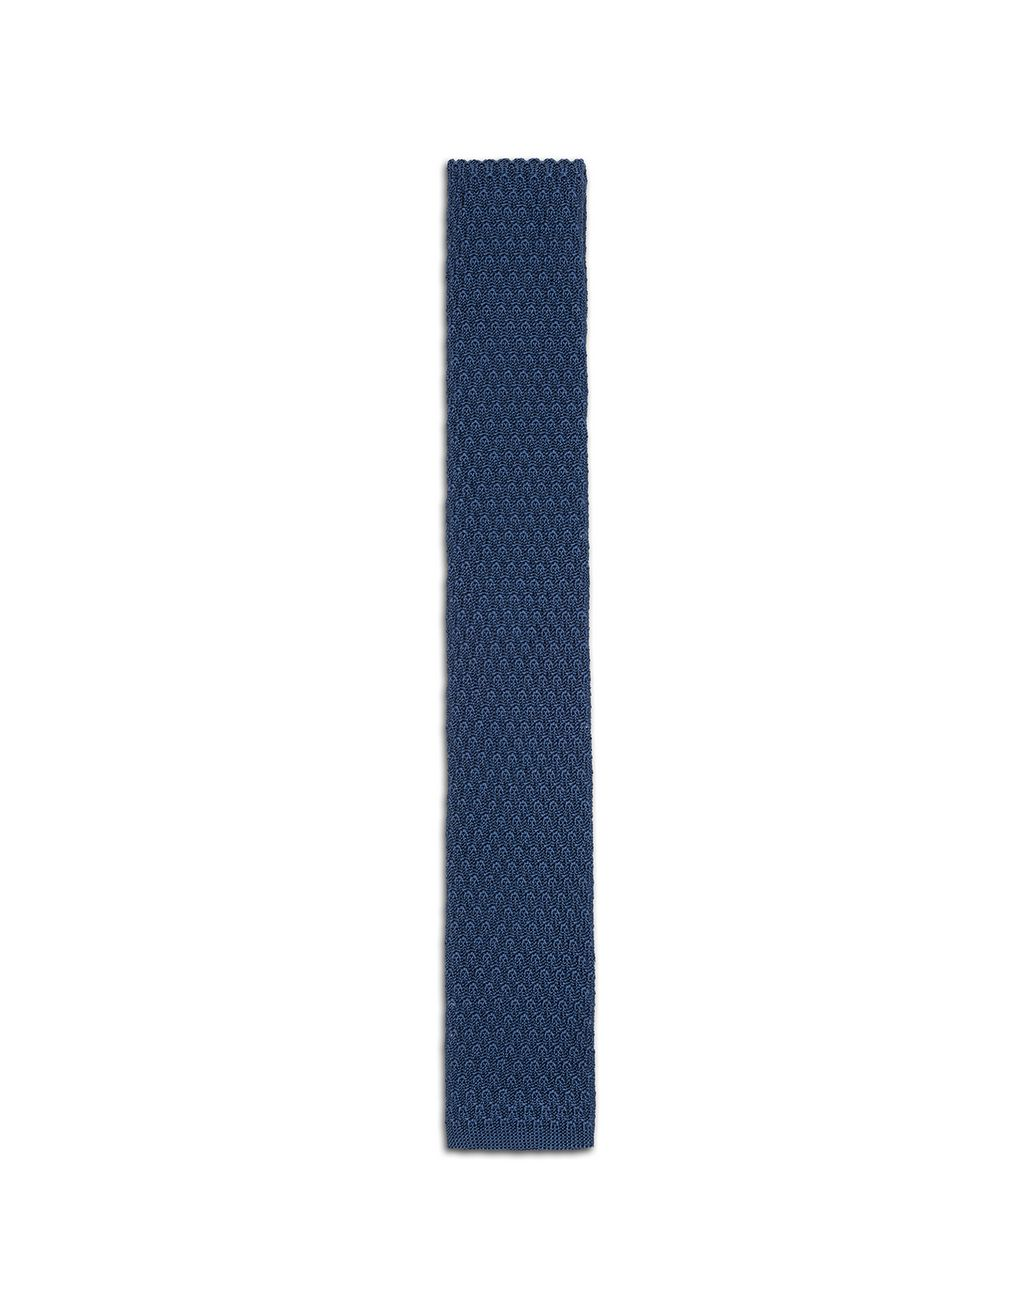 BRIONI Bluette Knitted Tie Tie & Pocket Square U f